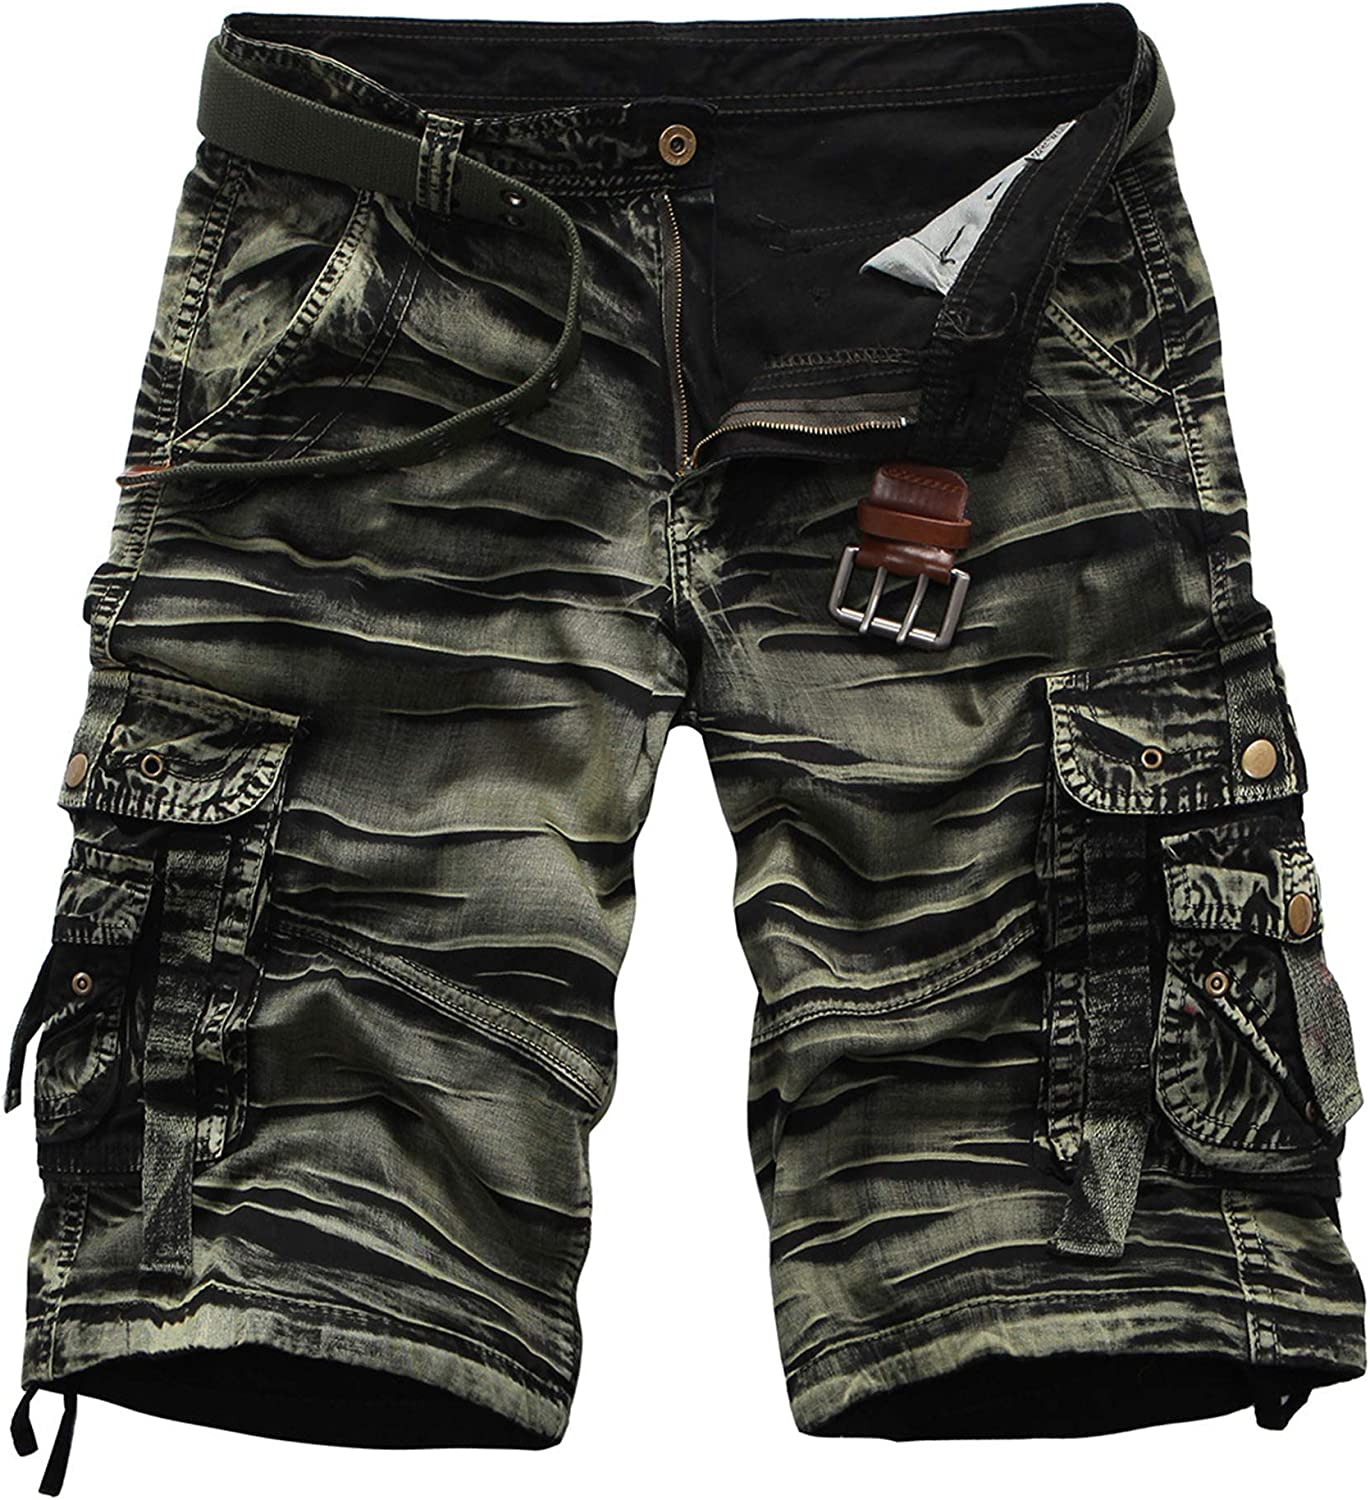 LZJDS Men's Shorts Camo Multi-Pocket Relaxed Fit Casual Shorts Outdoor Camouflage Cargo Shorts,001,36